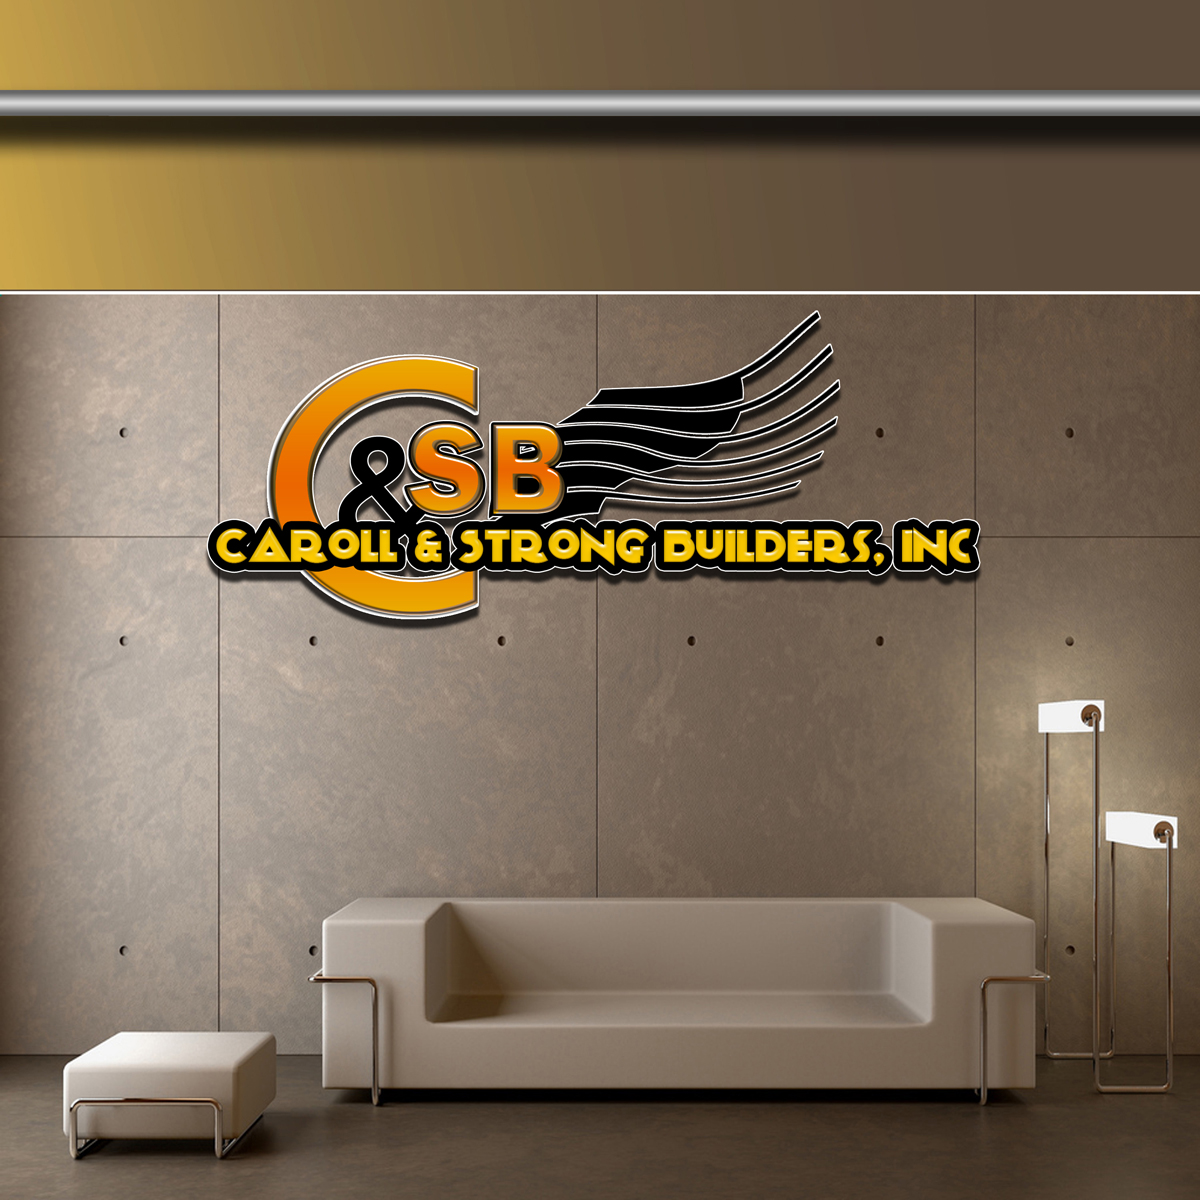 Logo Design by MITUCA ANDREI - Entry No. 22 in the Logo Design Contest New Logo Design for Carroll & Strong Builders, Inc..